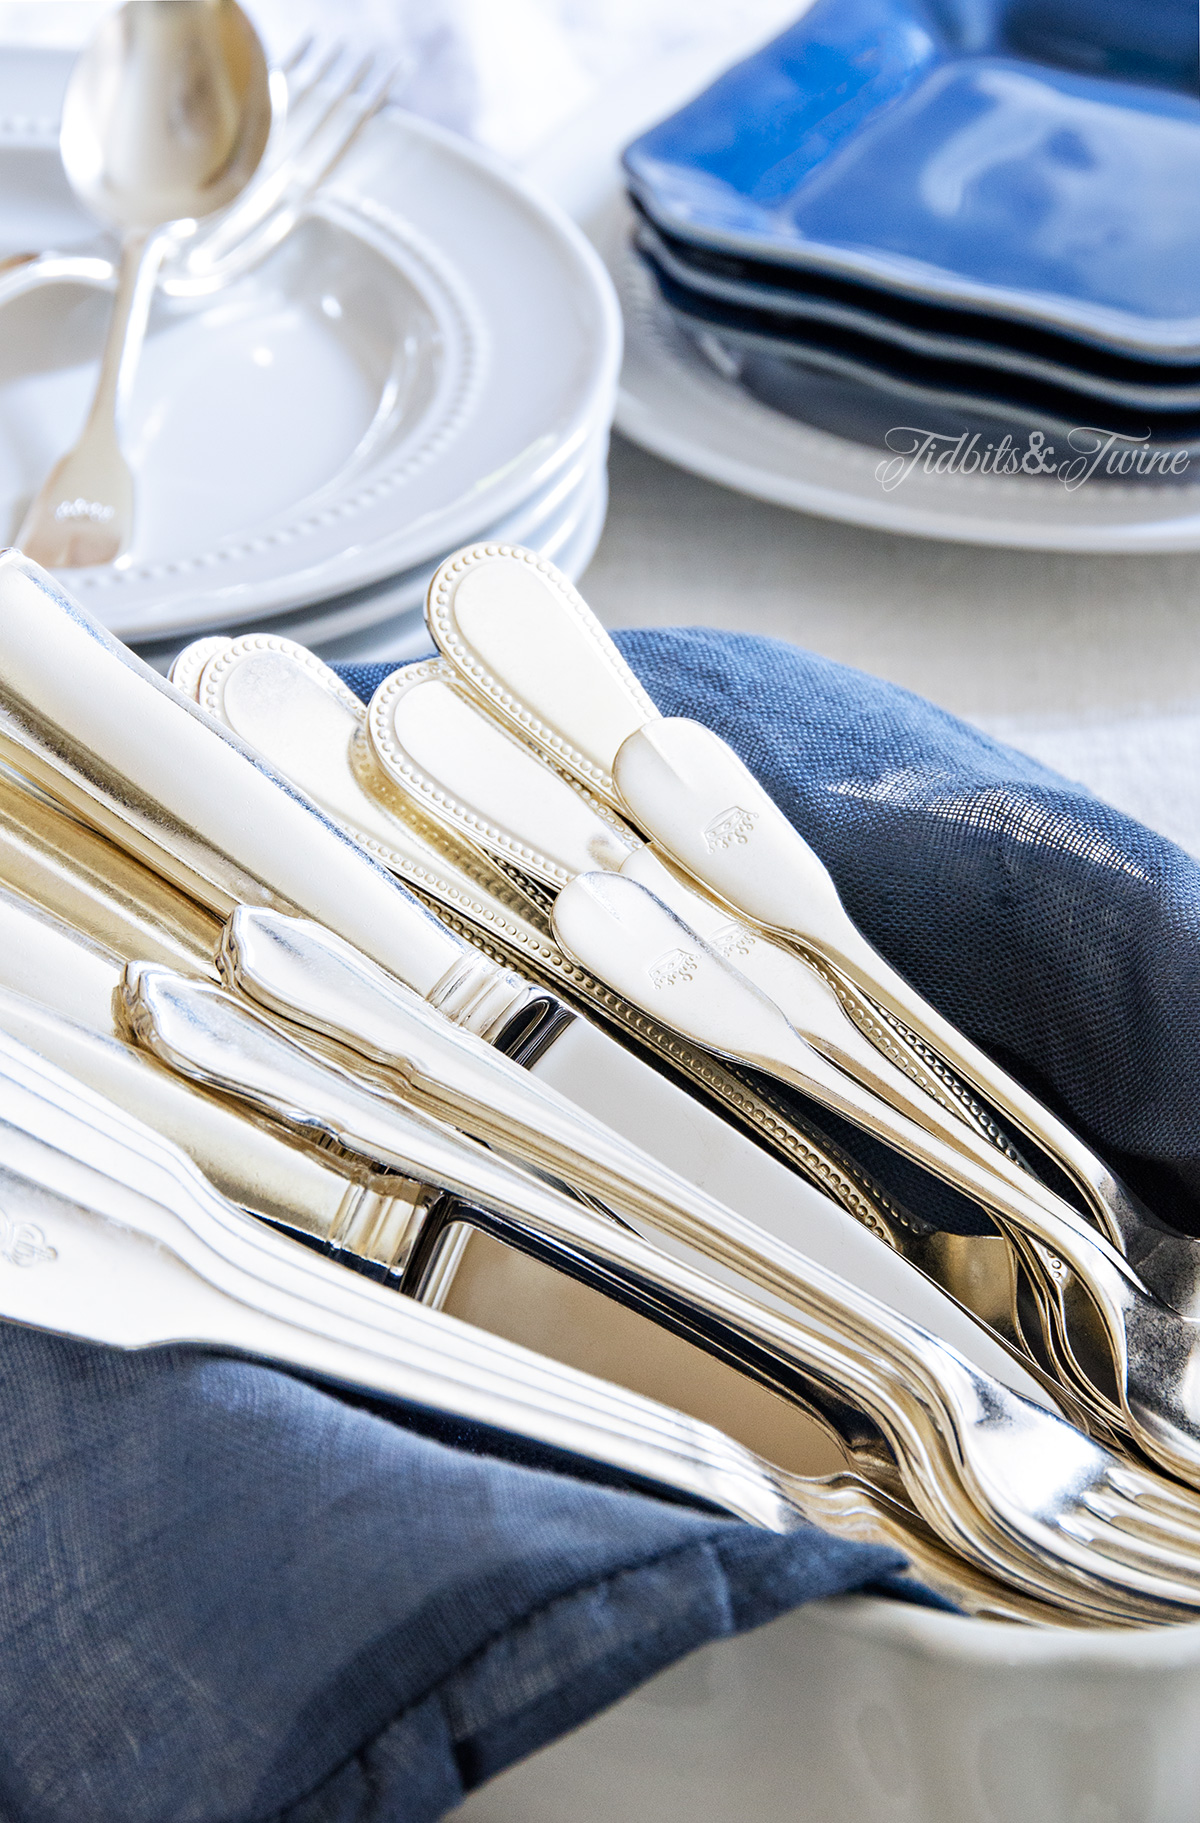 TIDBITS & TWINE Vintage Flatware and Ironstone Blue & White